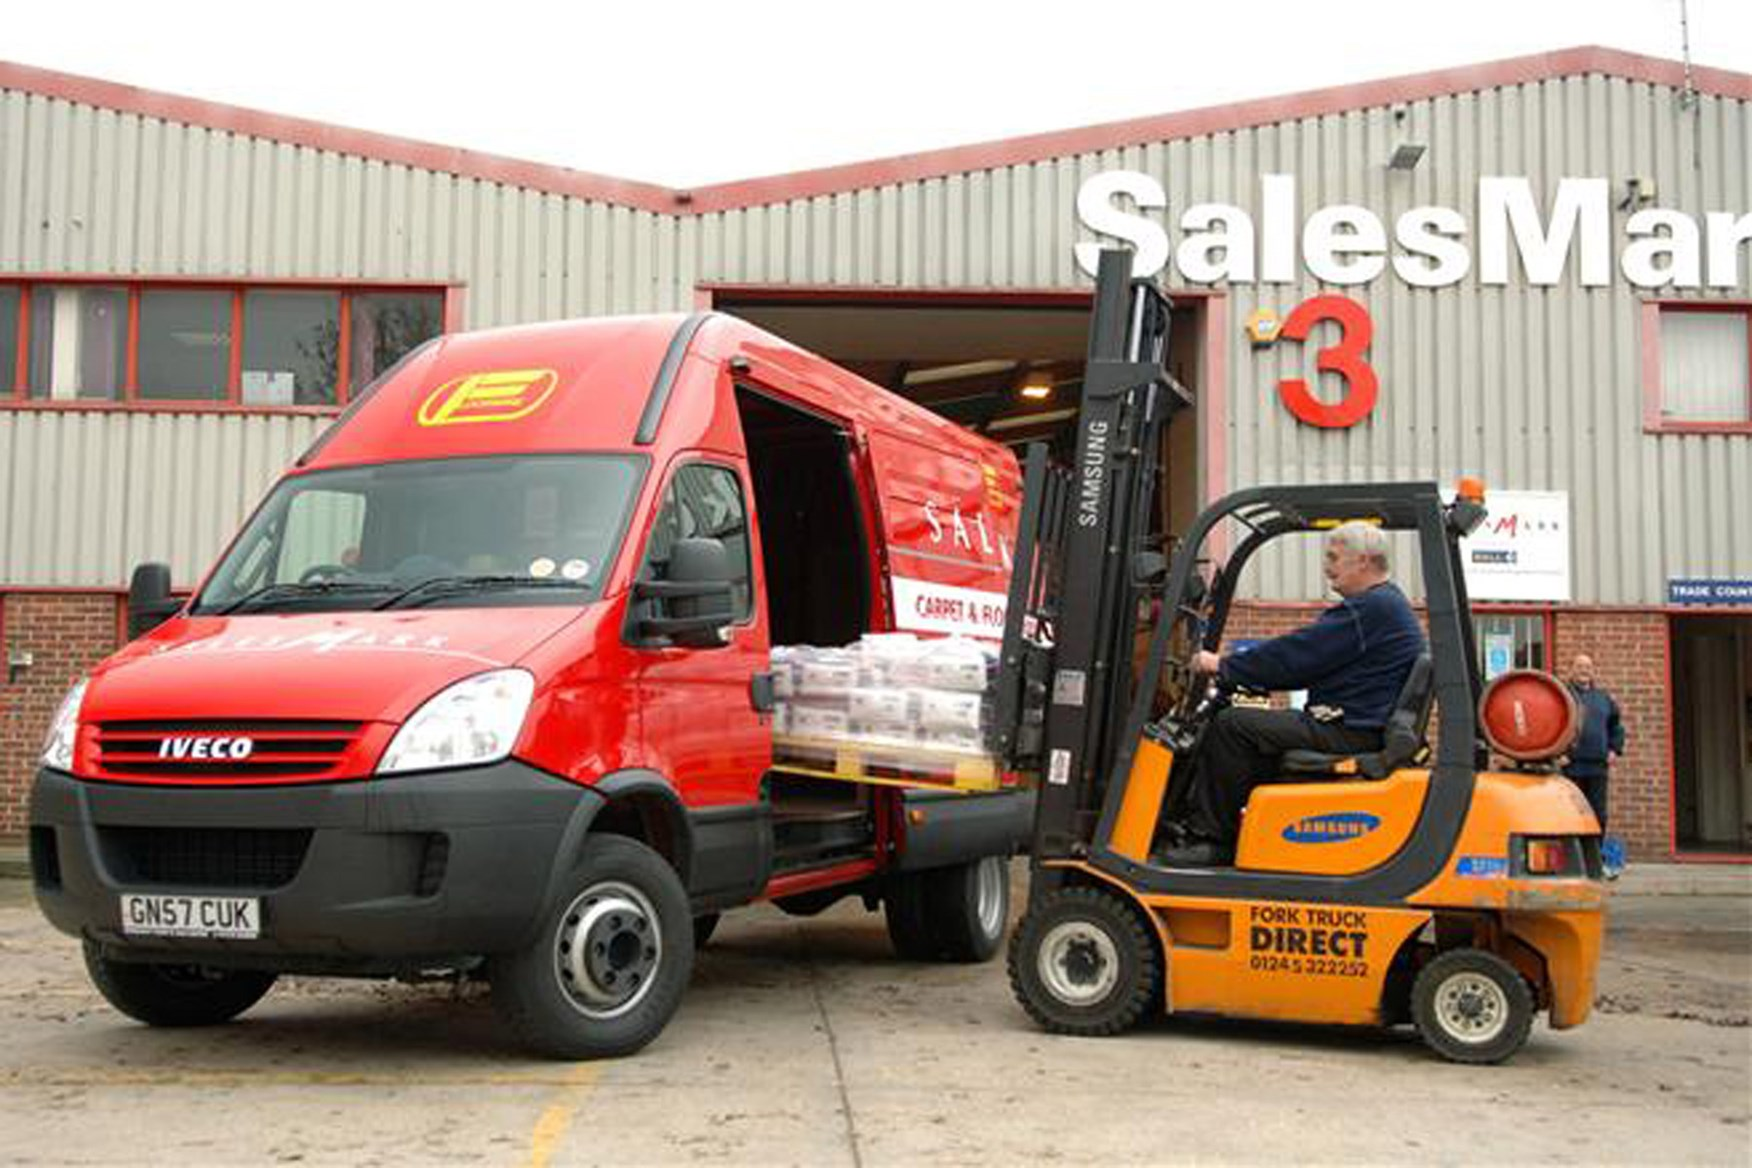 Iveco Daily 2006-2009 review on Parkers Vans - load area dimensions